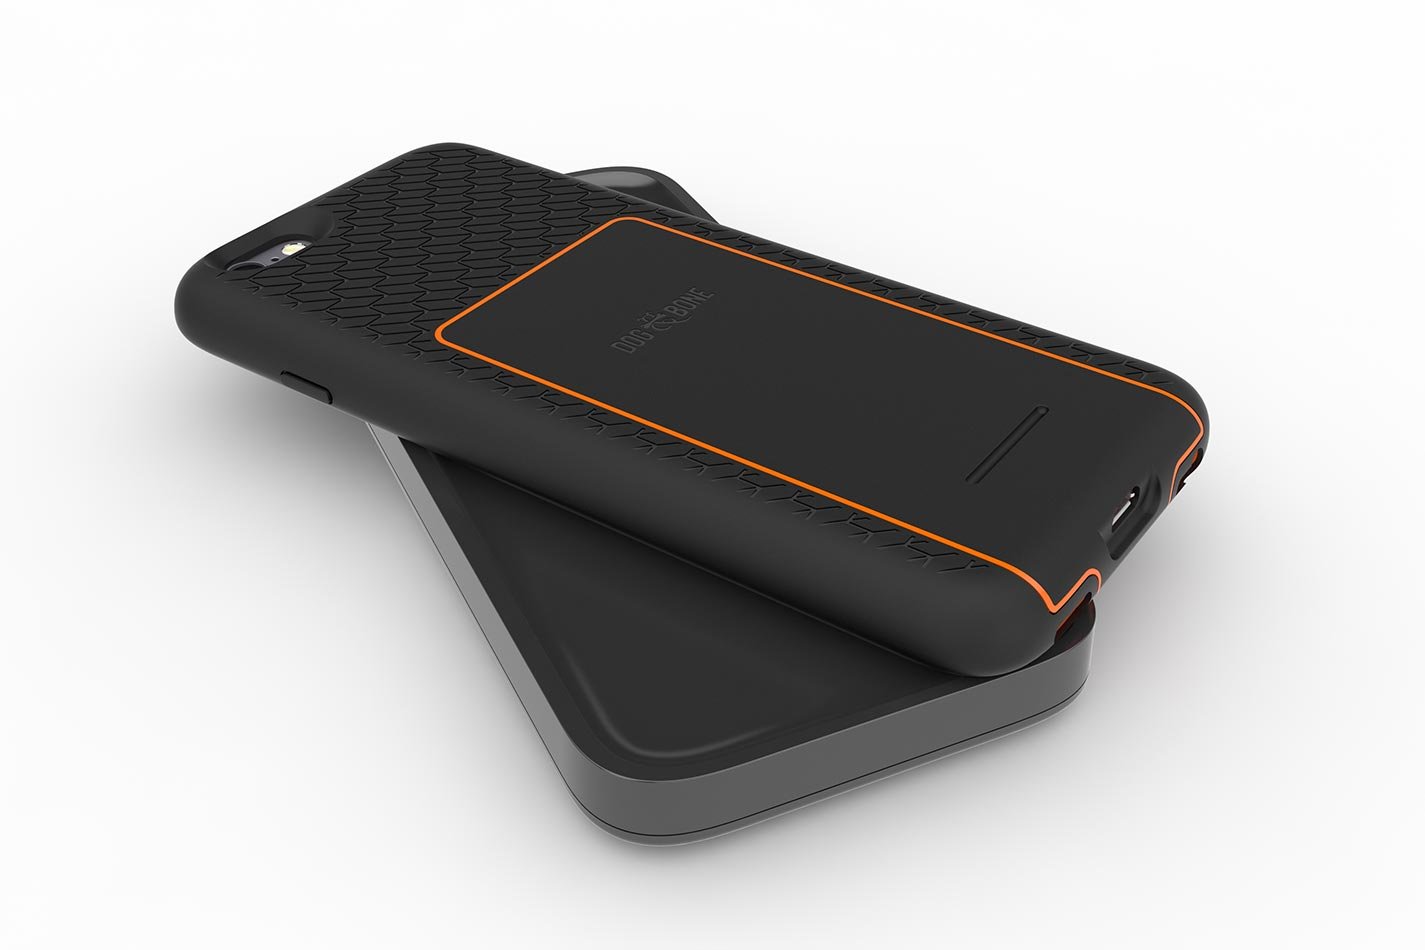 Iphone Charging Pad Without Case